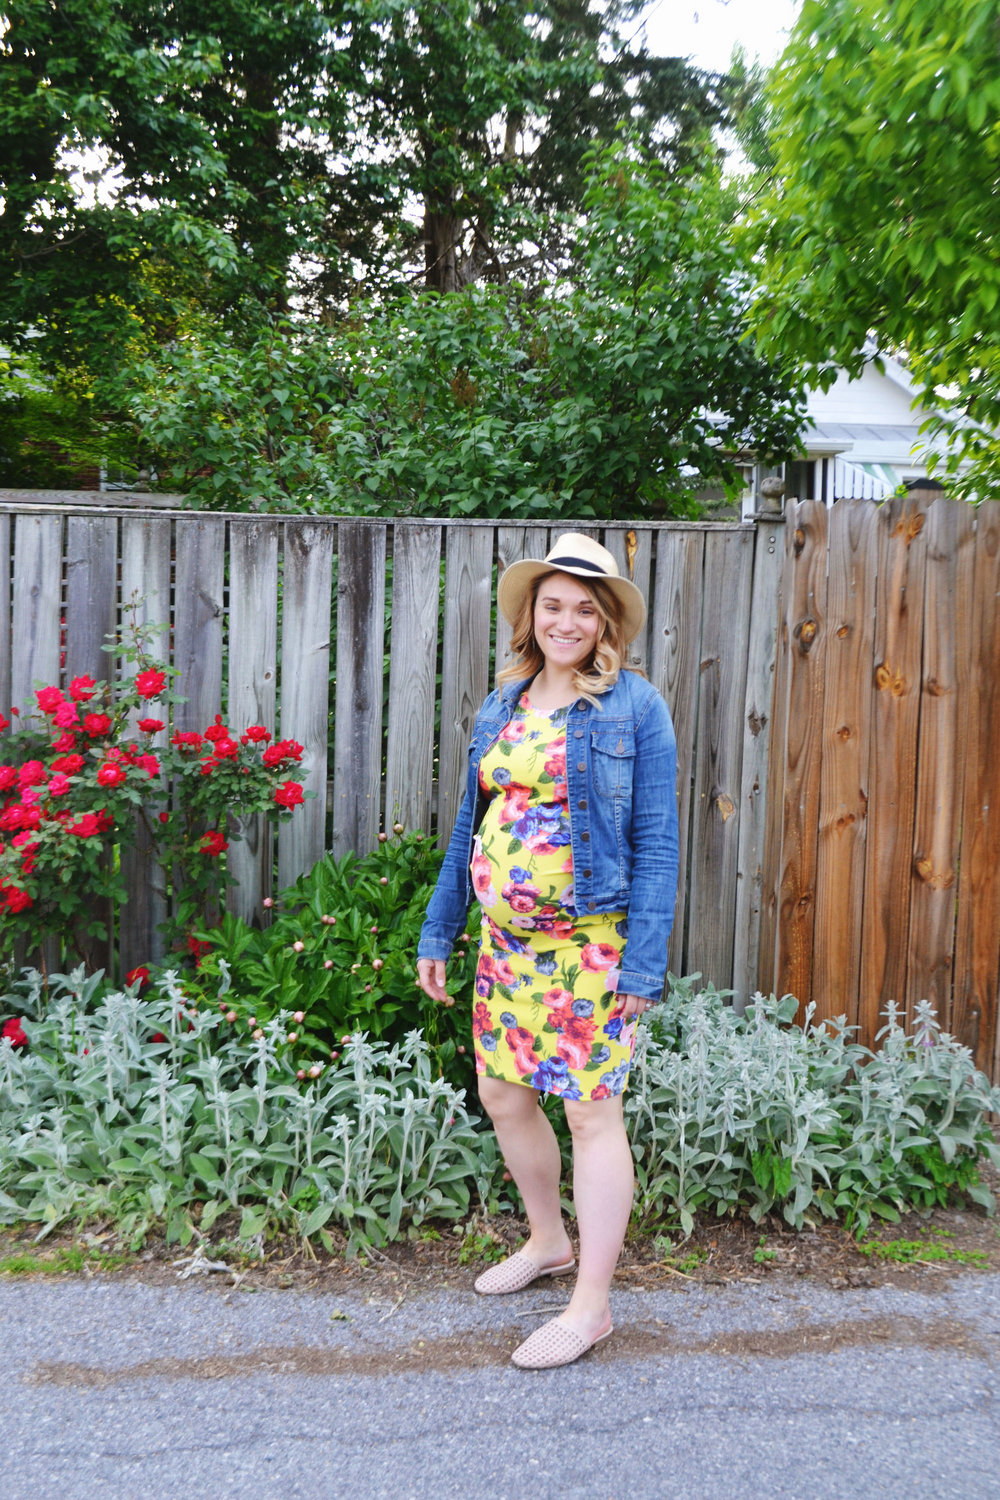 Dressing the Bump - Flower Power 4 | Maternity Style | BySarahRae.com